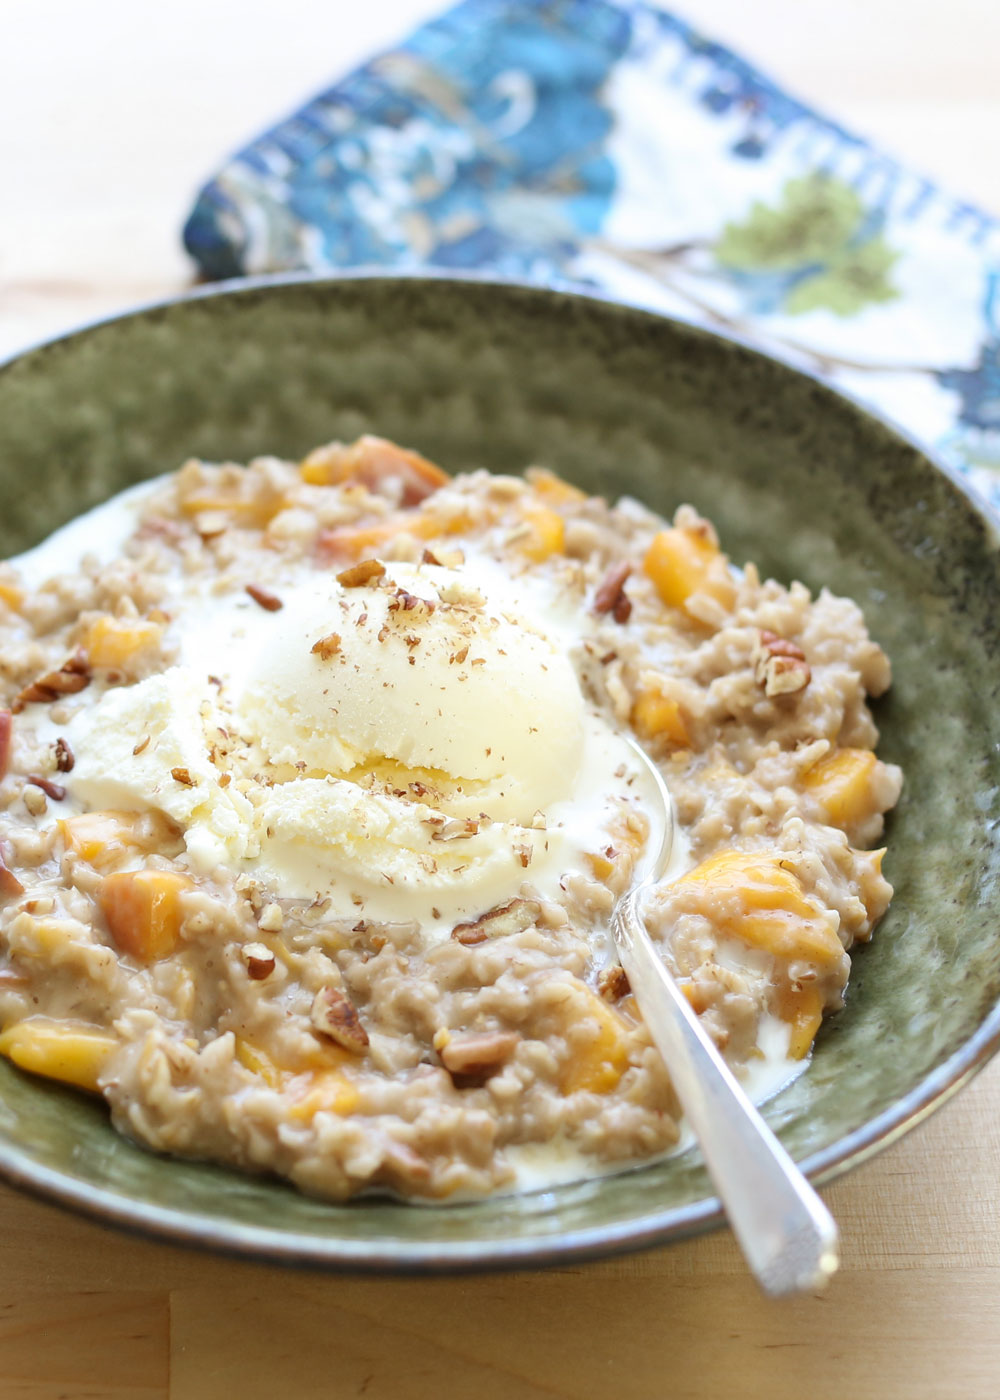 Peaches and Cream Oatmeal just might be the best oatmeal you'll ever make! recipe by Barefeet In The Kitchen